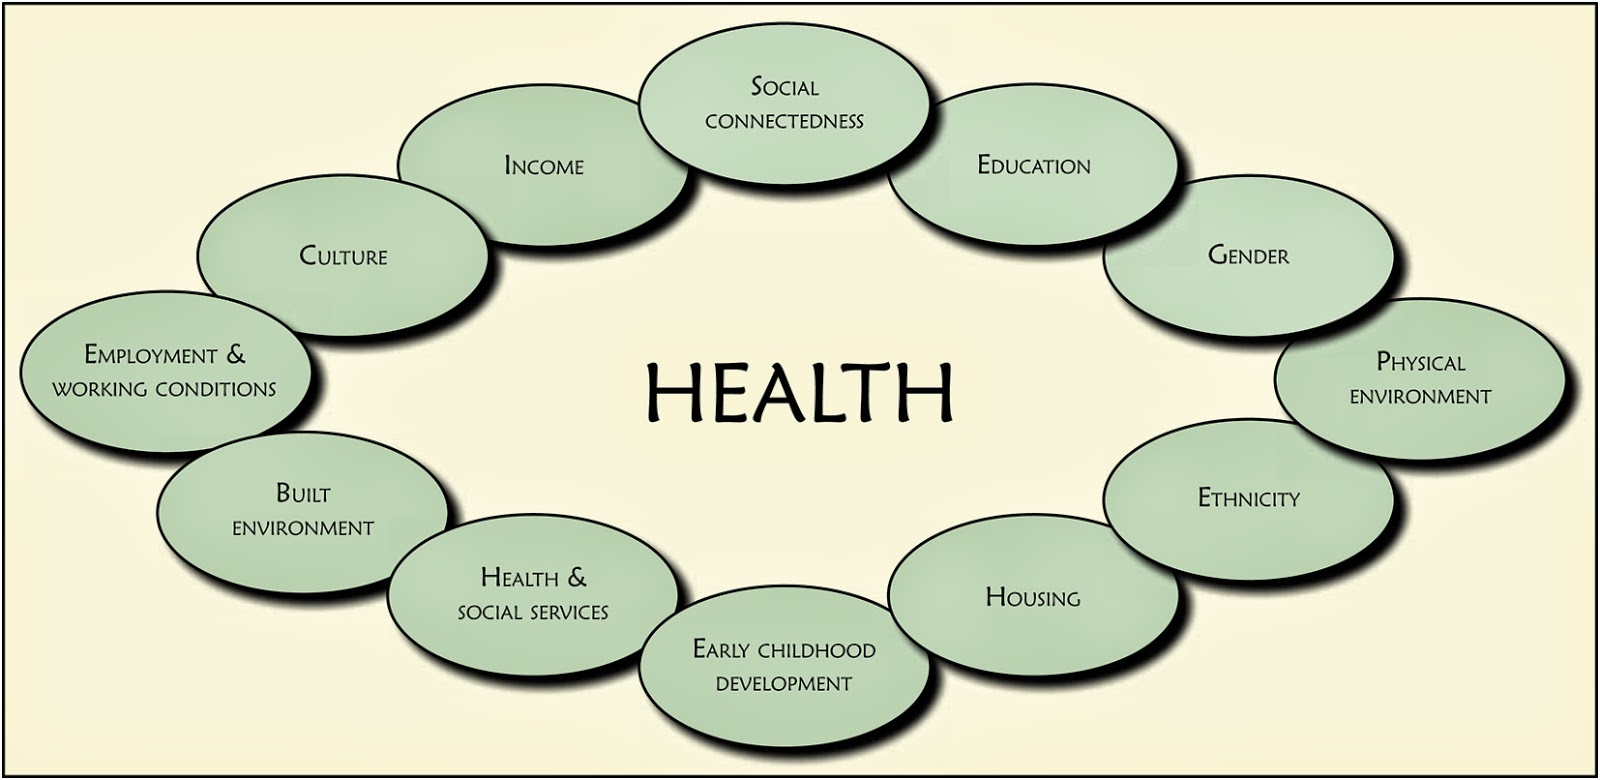 socioeconomic determinants of health The social determinants of health in poverty describe the factors that affect impoverished populations' health and health inequality inequalities in health stem from the conditions of people's lives, including living conditions, work environment, age, and other social factors, and how these affect people's ability to respond to illness.